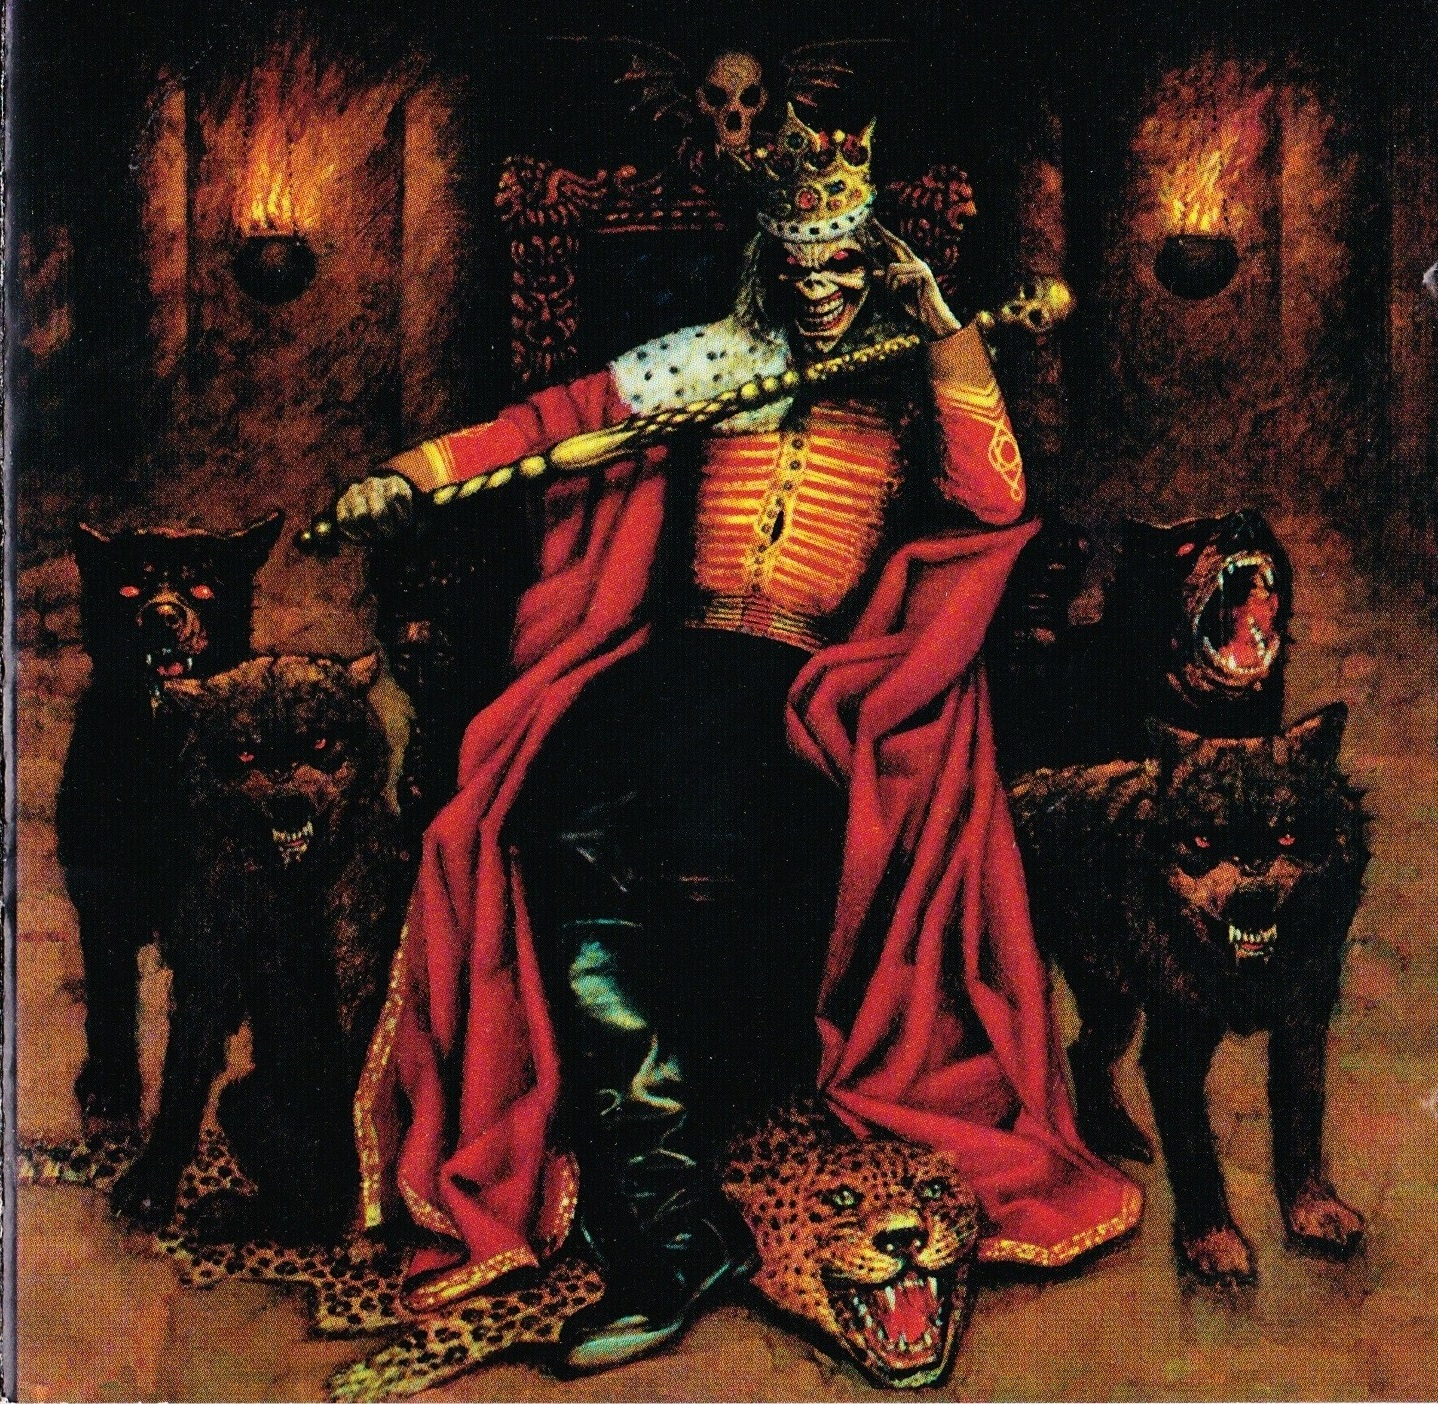 Iron Maiden — Edward The Great — The Greatest Hits (2002)